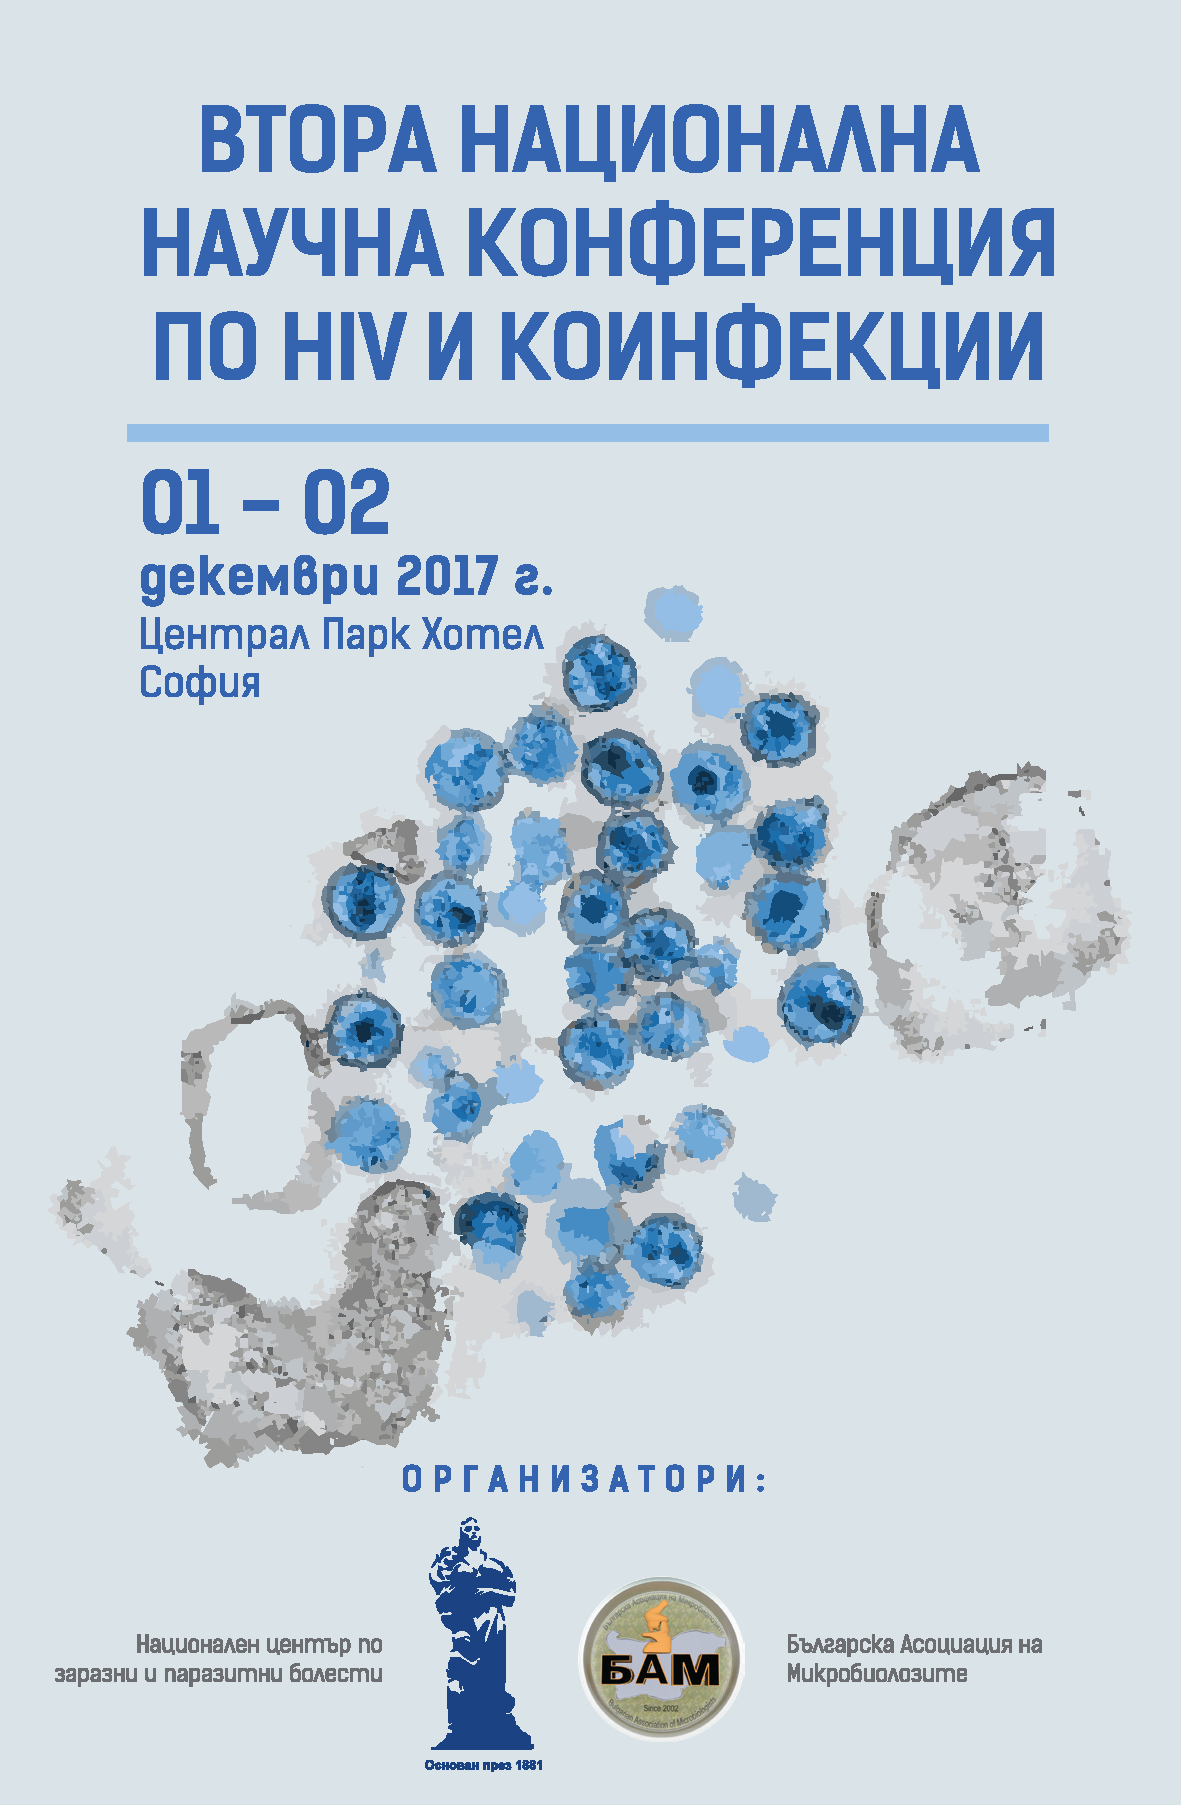 2nd National Scientific Conference on HIV and Coinfections